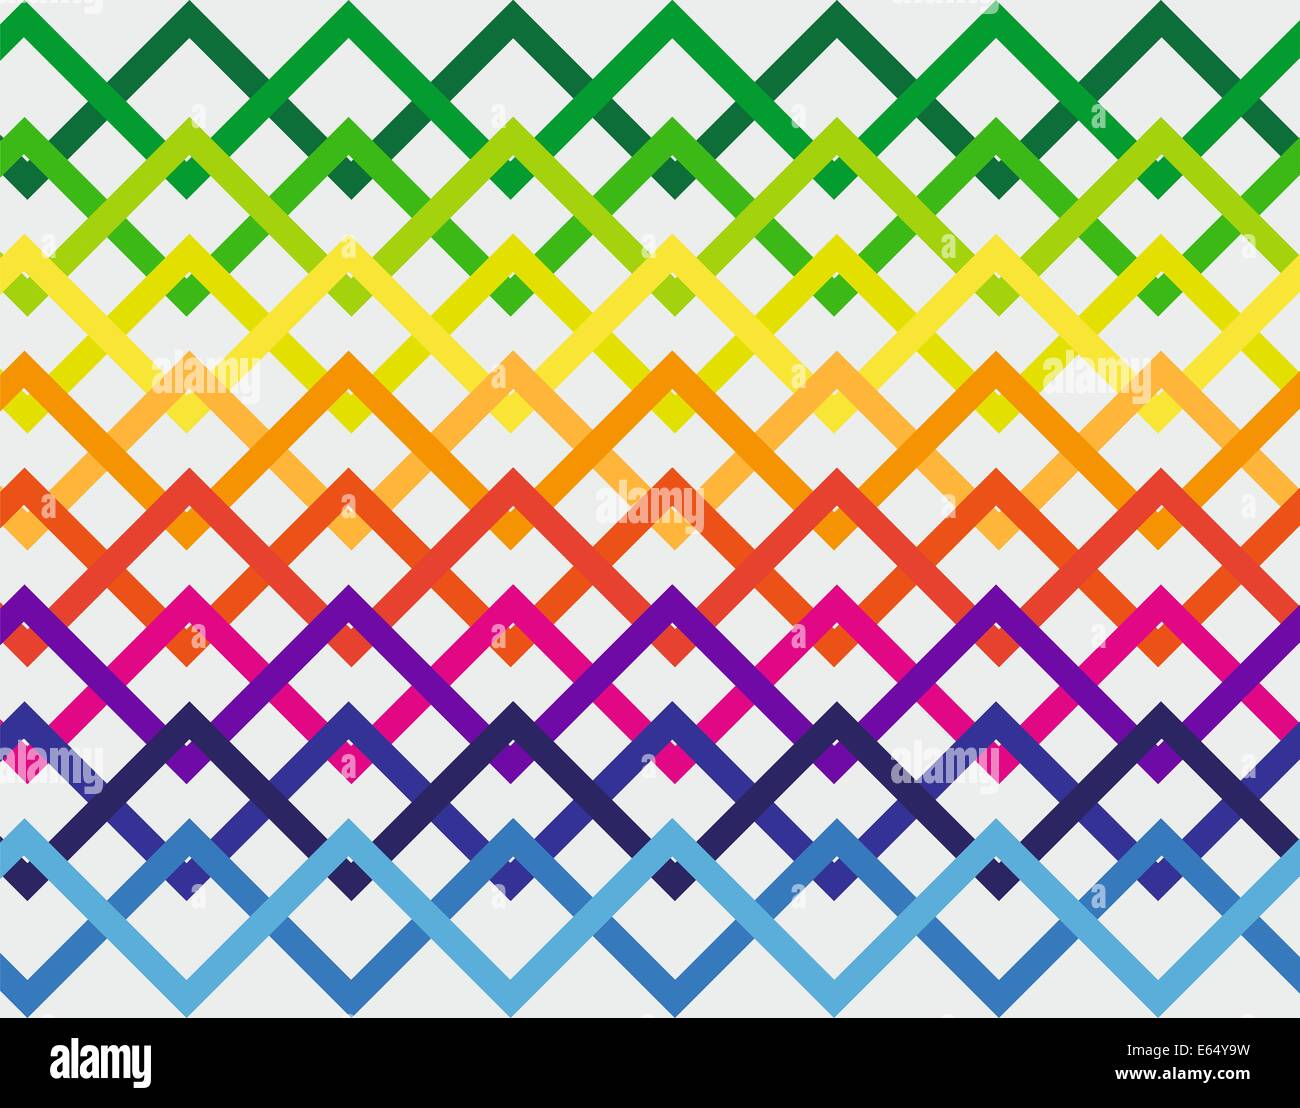 zick zack zickzack muster versetzt versetztes bunt regenbogen stock photo royalty free image. Black Bedroom Furniture Sets. Home Design Ideas